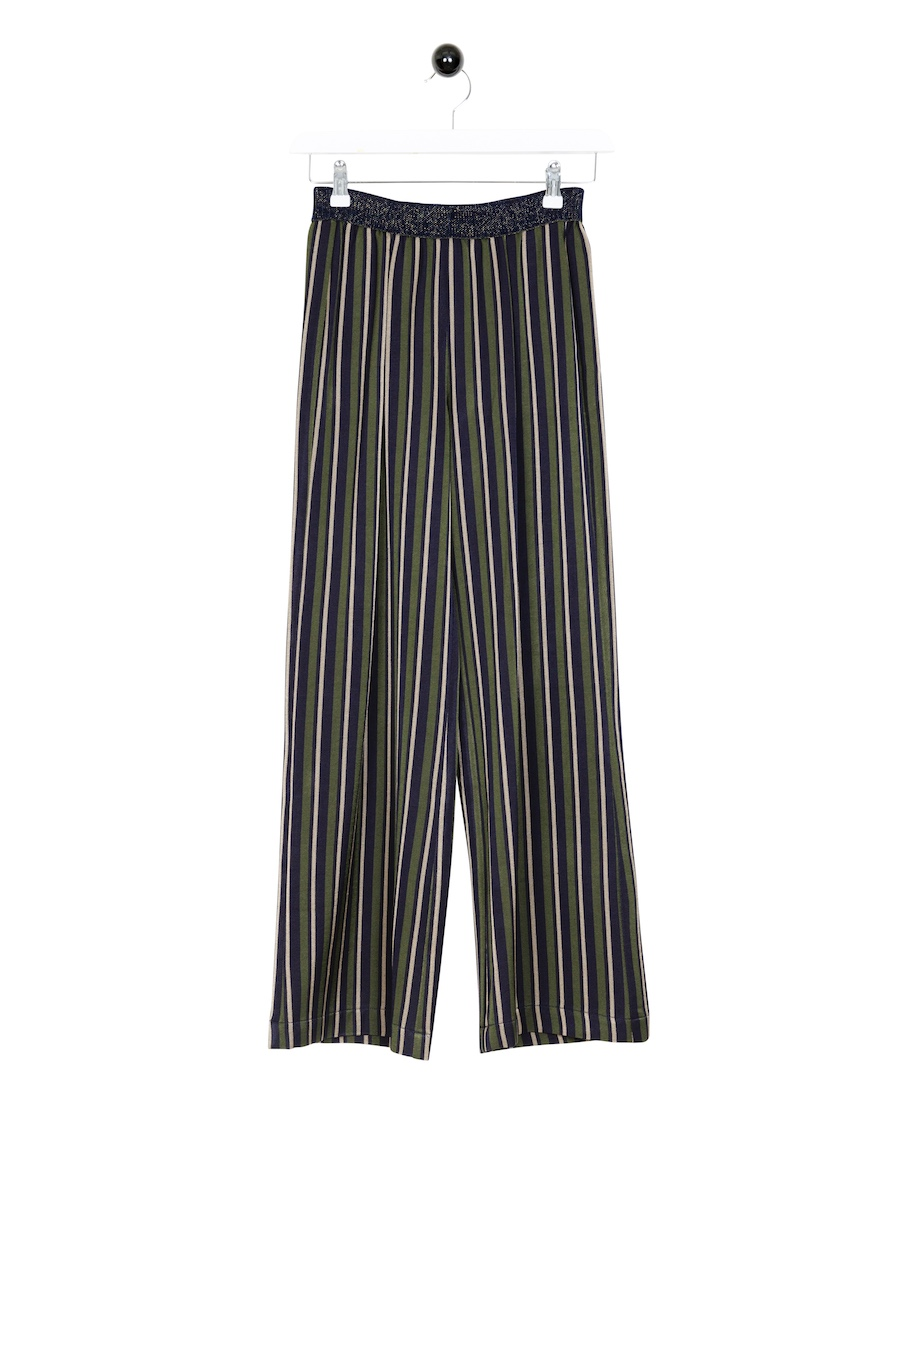 Ellister Trousers